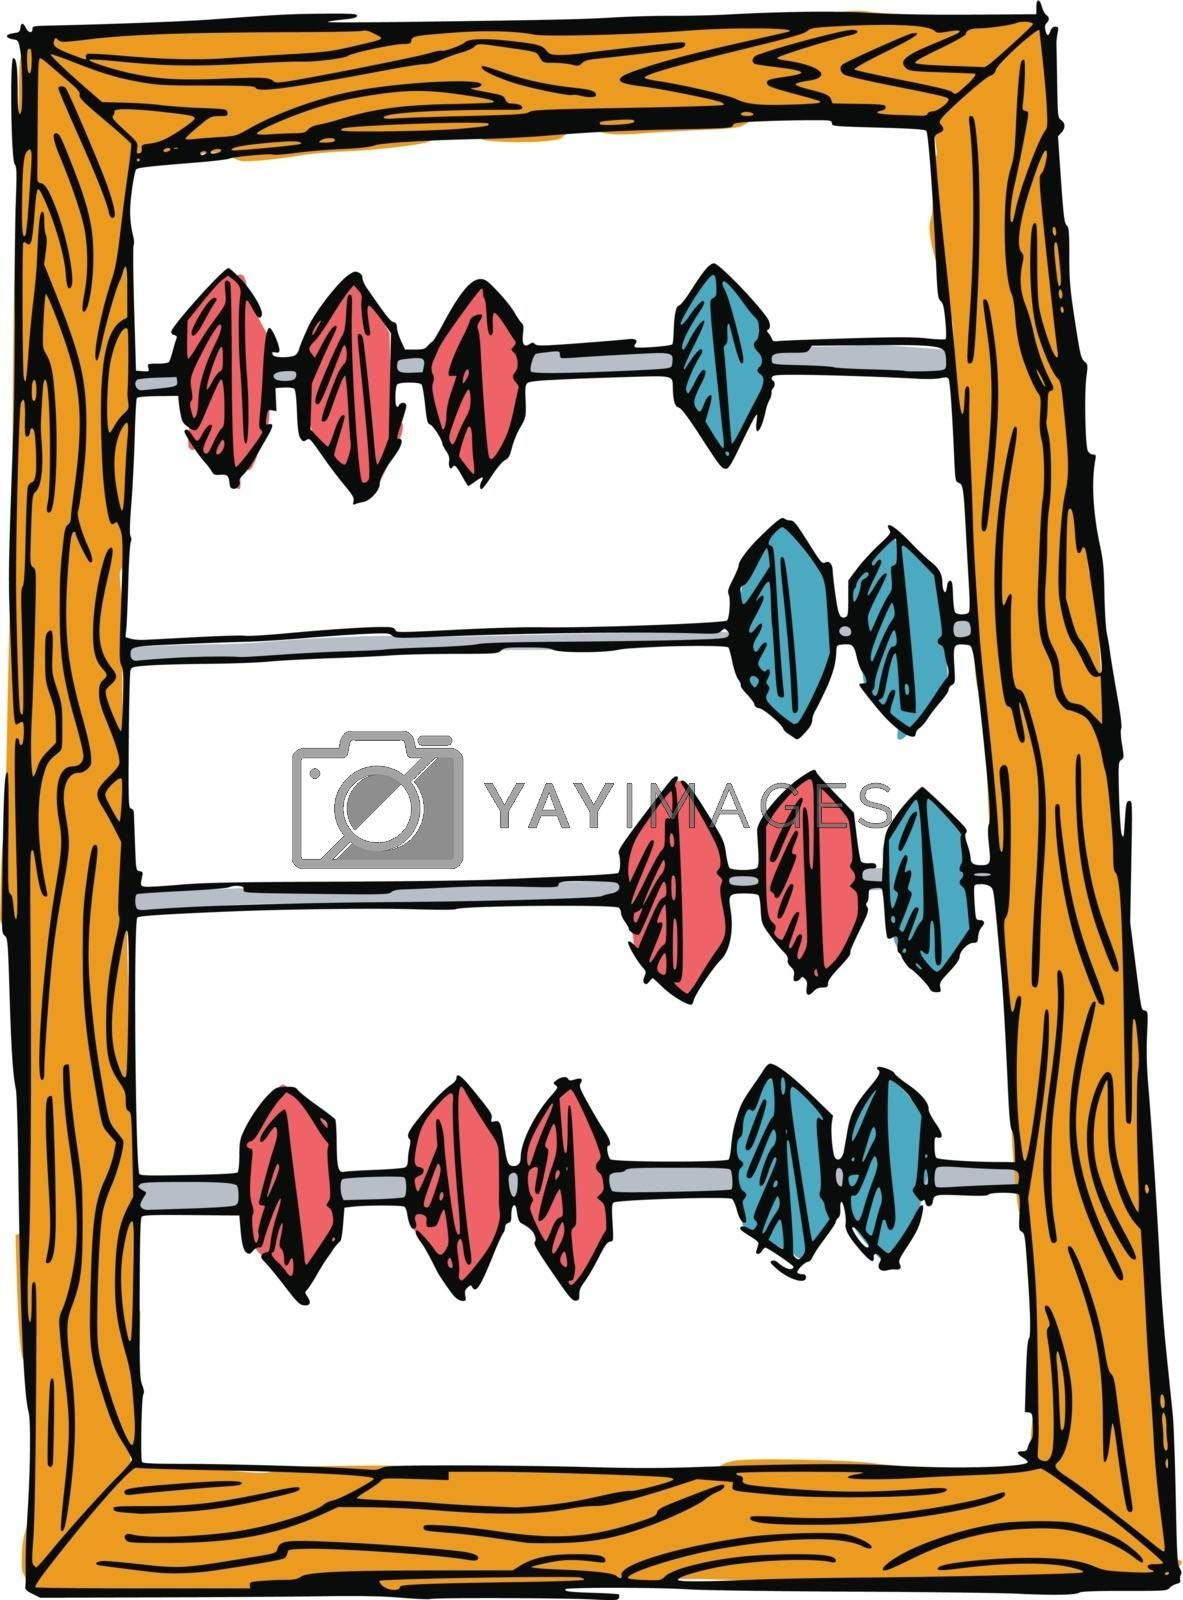 Royalty free image of abacus by Perysty